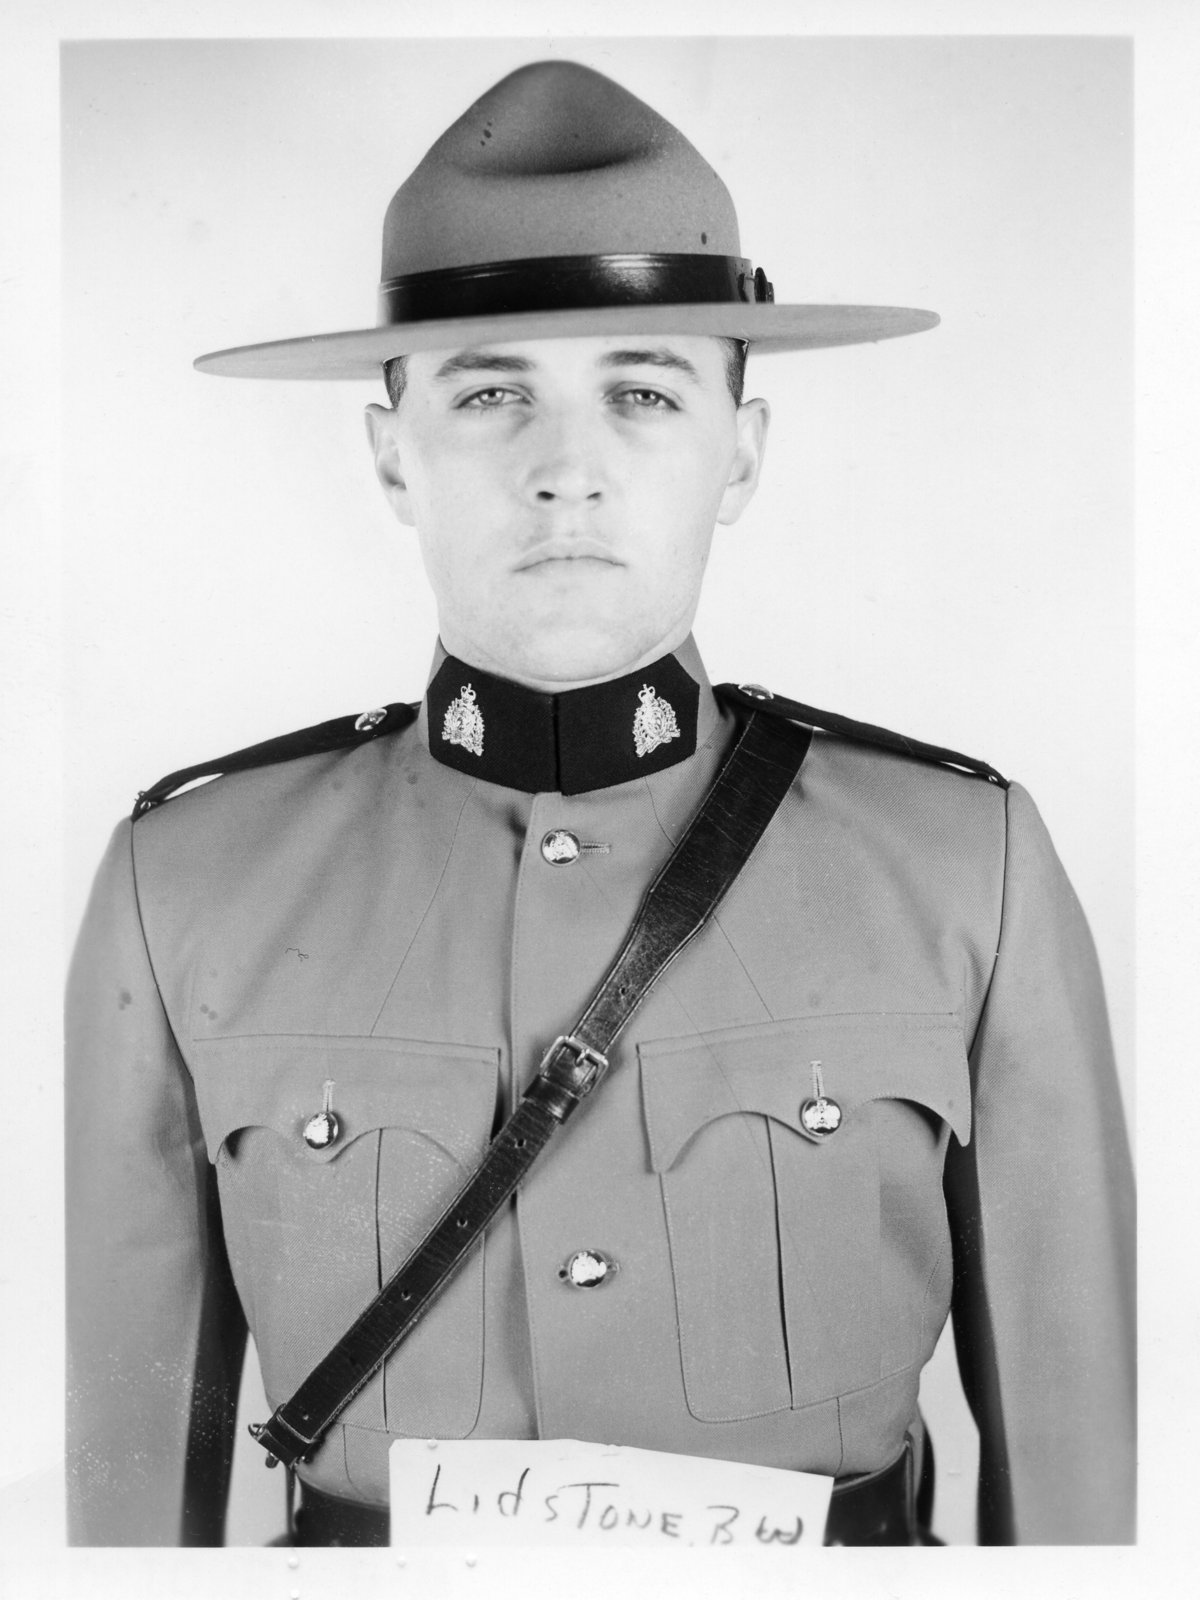 Corporal Barry Warren Lidstone– © Her Majesty the Queen in Right of Canada as represented by the Royal Canadian Mounted Police